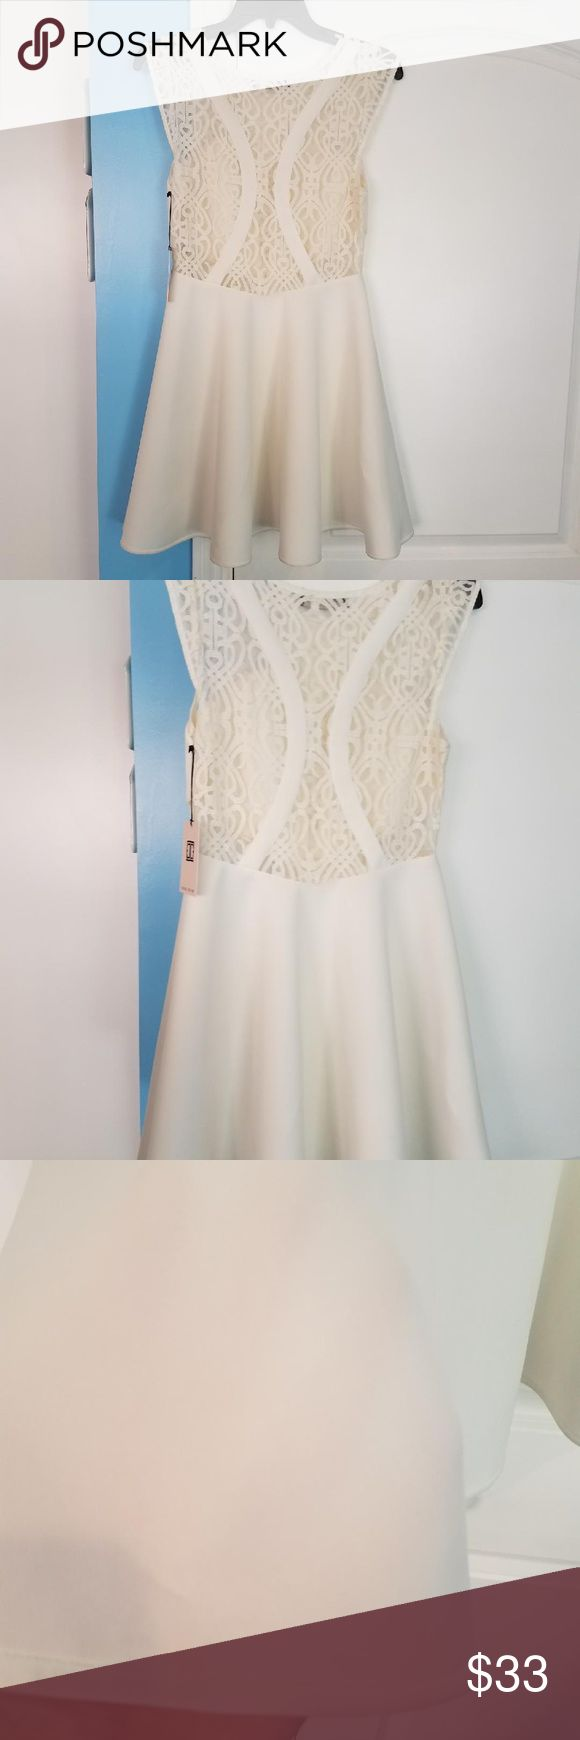 NWT Ivory/ white Ivanka Trump lace inset Sz 10 New with tags. Very sexy, but stylish white/ Ivory dress with lace insets. Flirty and fun. This was purchased from a sample sale. Never worn! Comes from a smoke and pet free home. Has a very small dust pattern on the side of the skirt. It needs to be washed. I don't want to wash then sell because then I'd have to remove the tags. Definitely something that can even be wiped away. Ivanka Trump Dresses